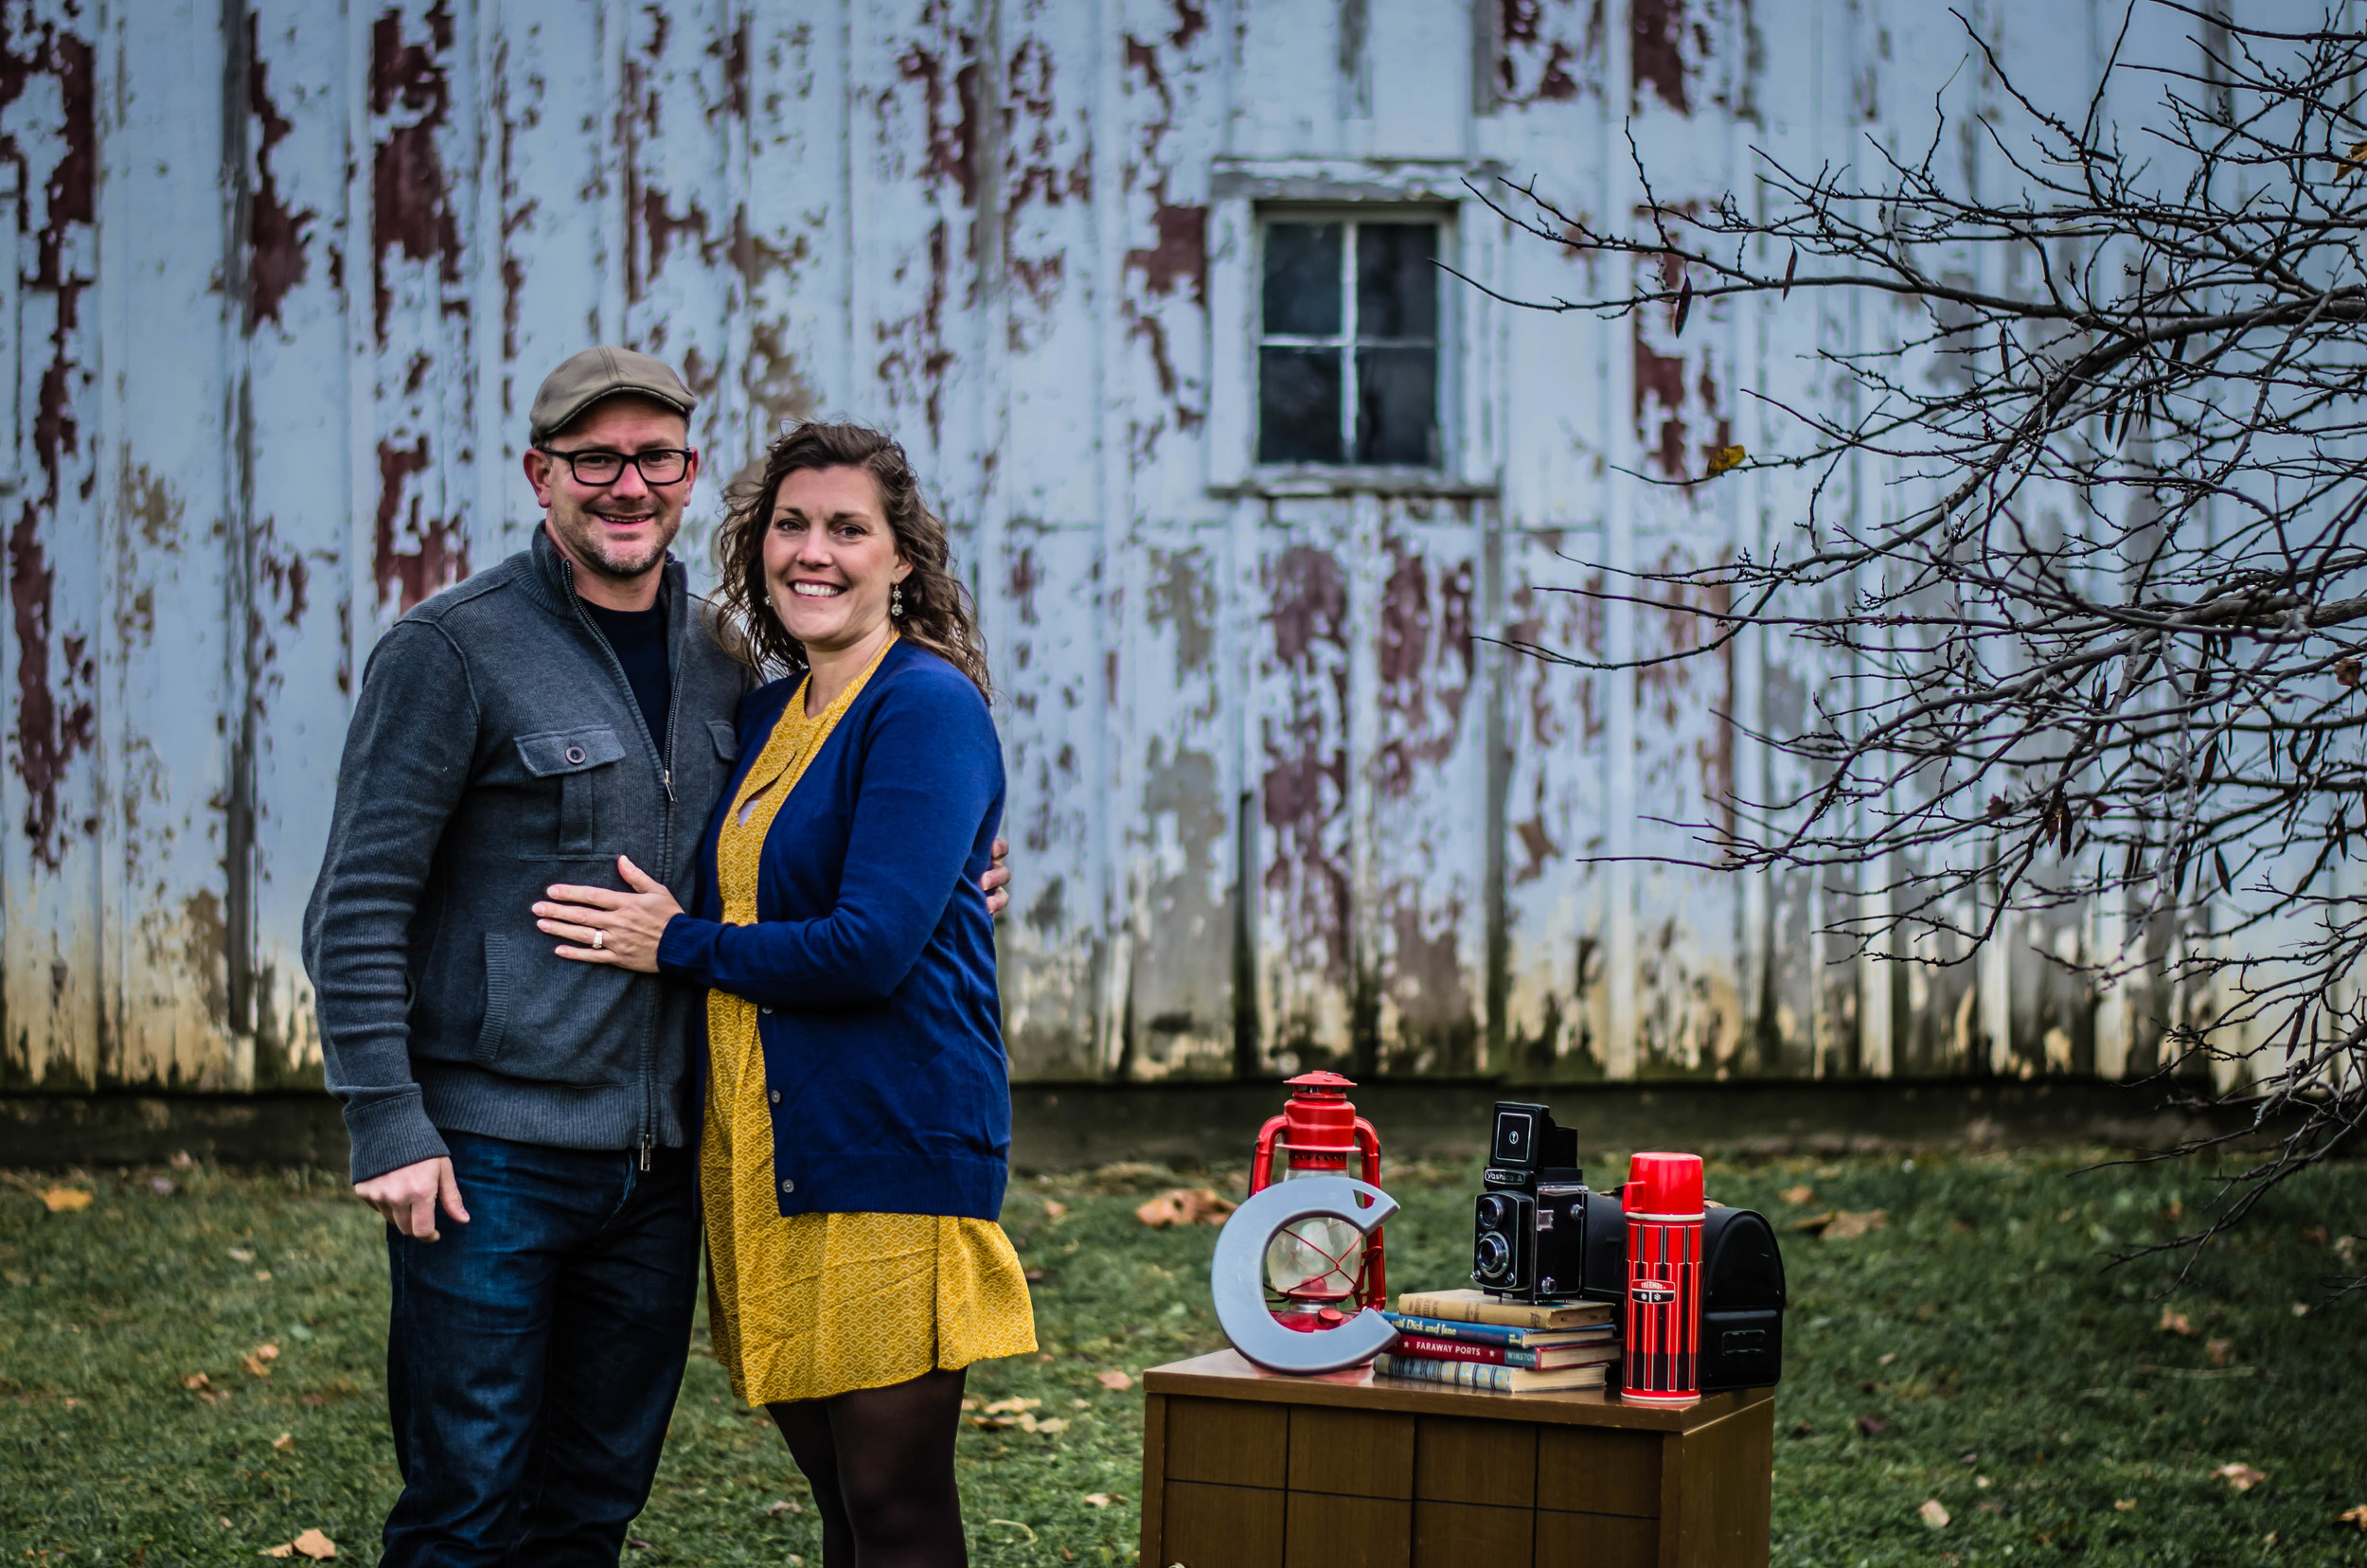 desmoinesfamily (44 of 50).jpg